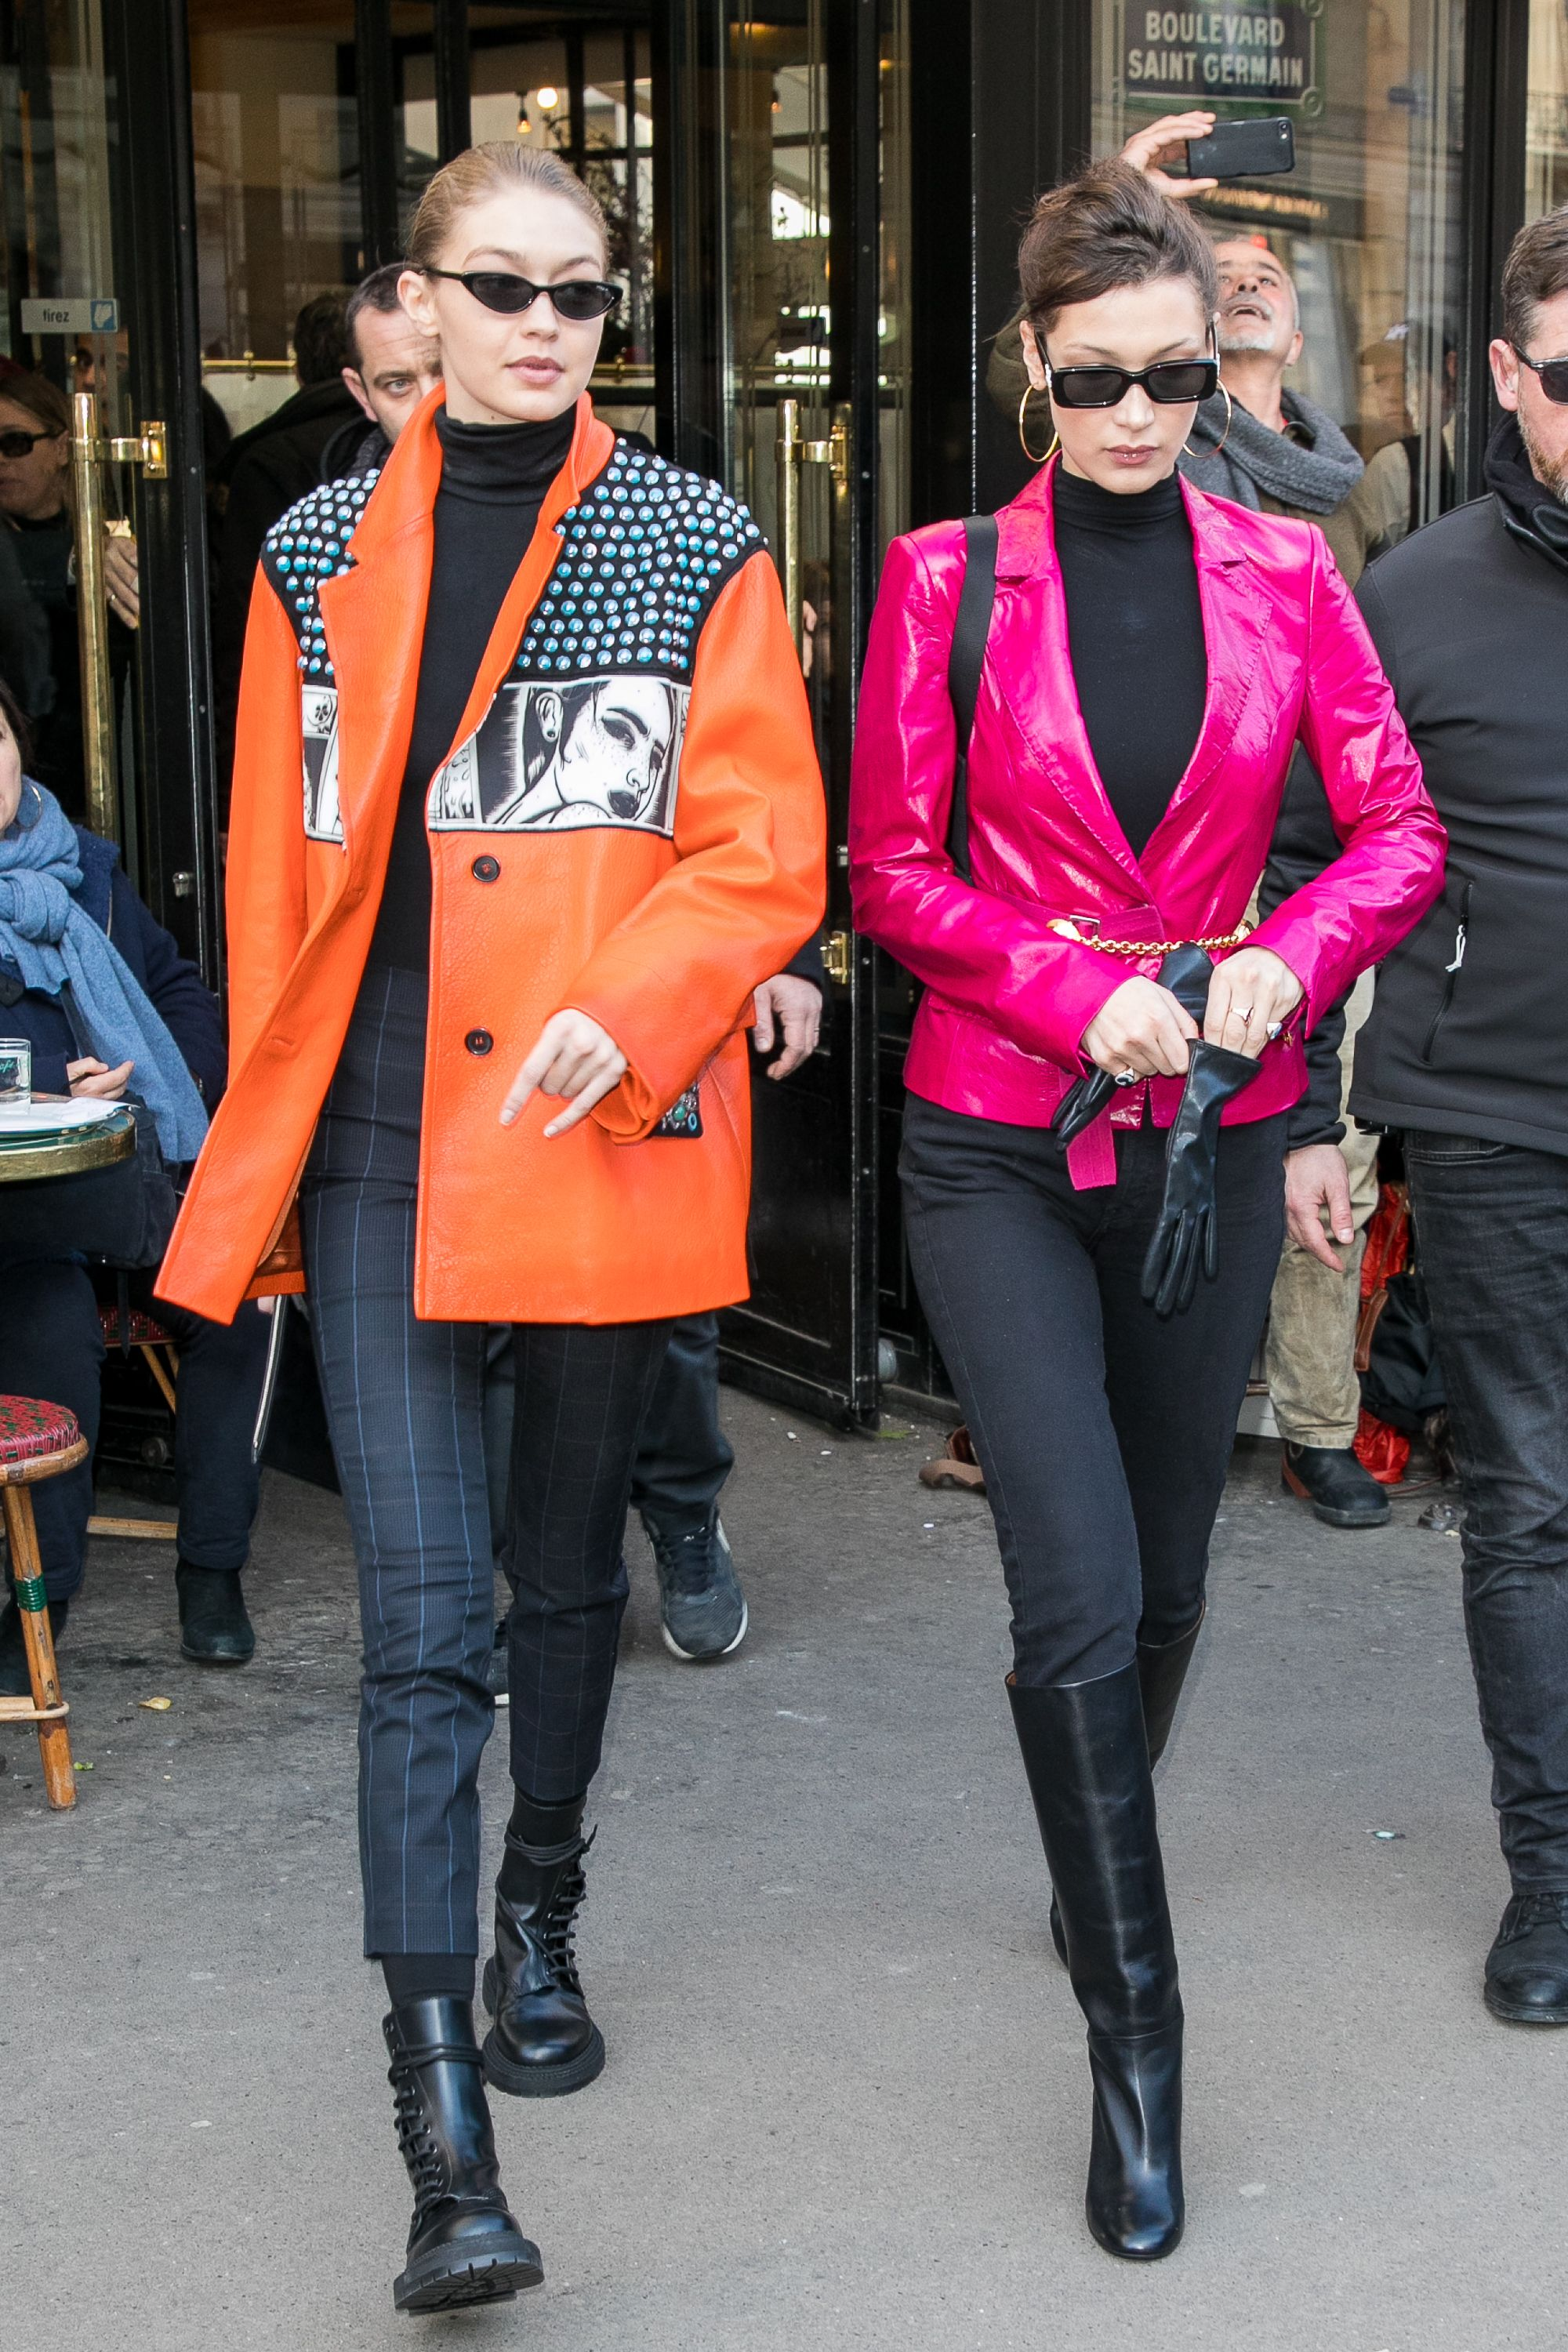 March 3, 2018 Hadid wore a pop art–inspired orange Prada leather jacket from the Spring/Summer 2018 collection while out with her sister in Paris. The pair shined in bright colors for the paparazzi.